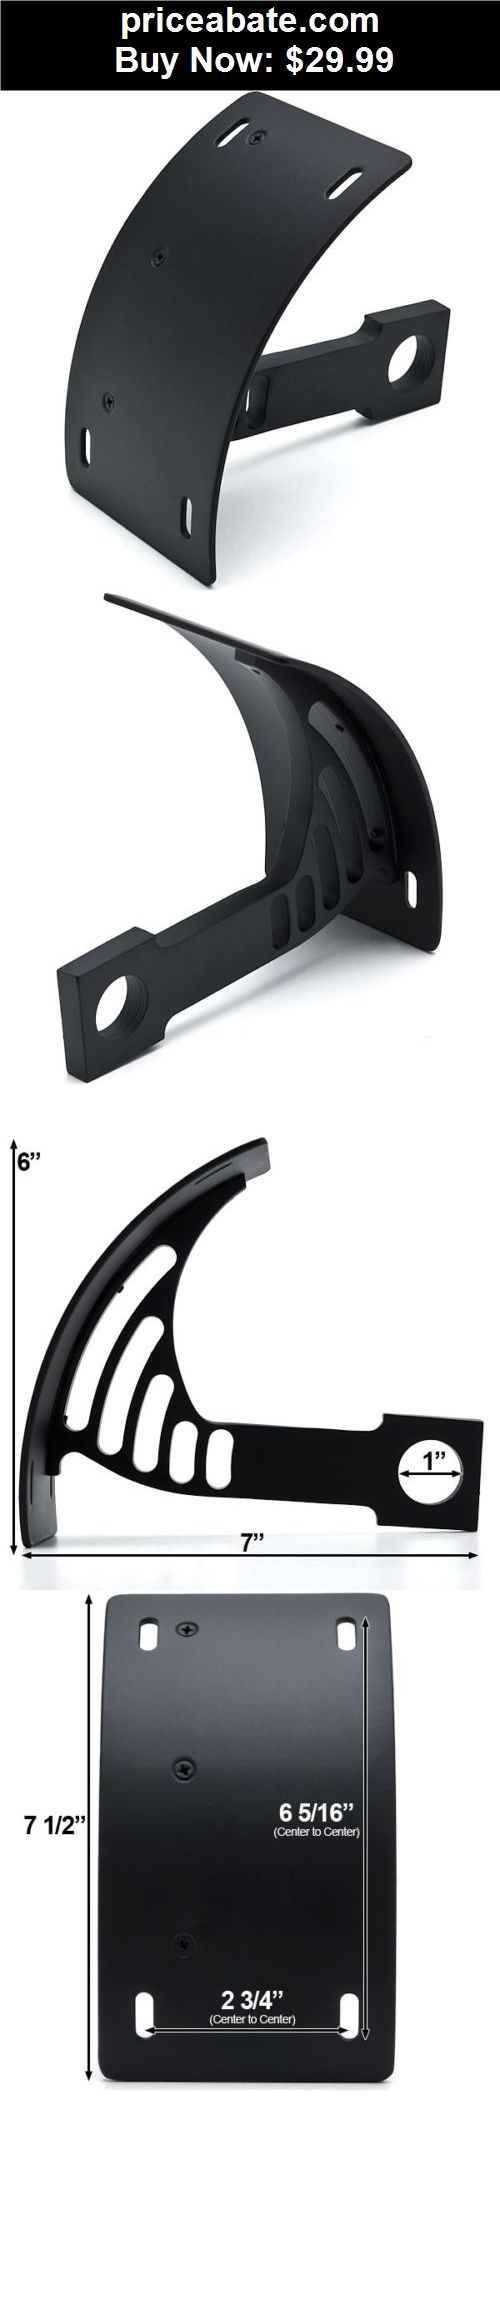 Motors-Parts-And-Accessories: Black Vertical Plate Holder For Harley Davidson XL Sportster 1200 Custom - BUY IT NOW ONLY $29.99